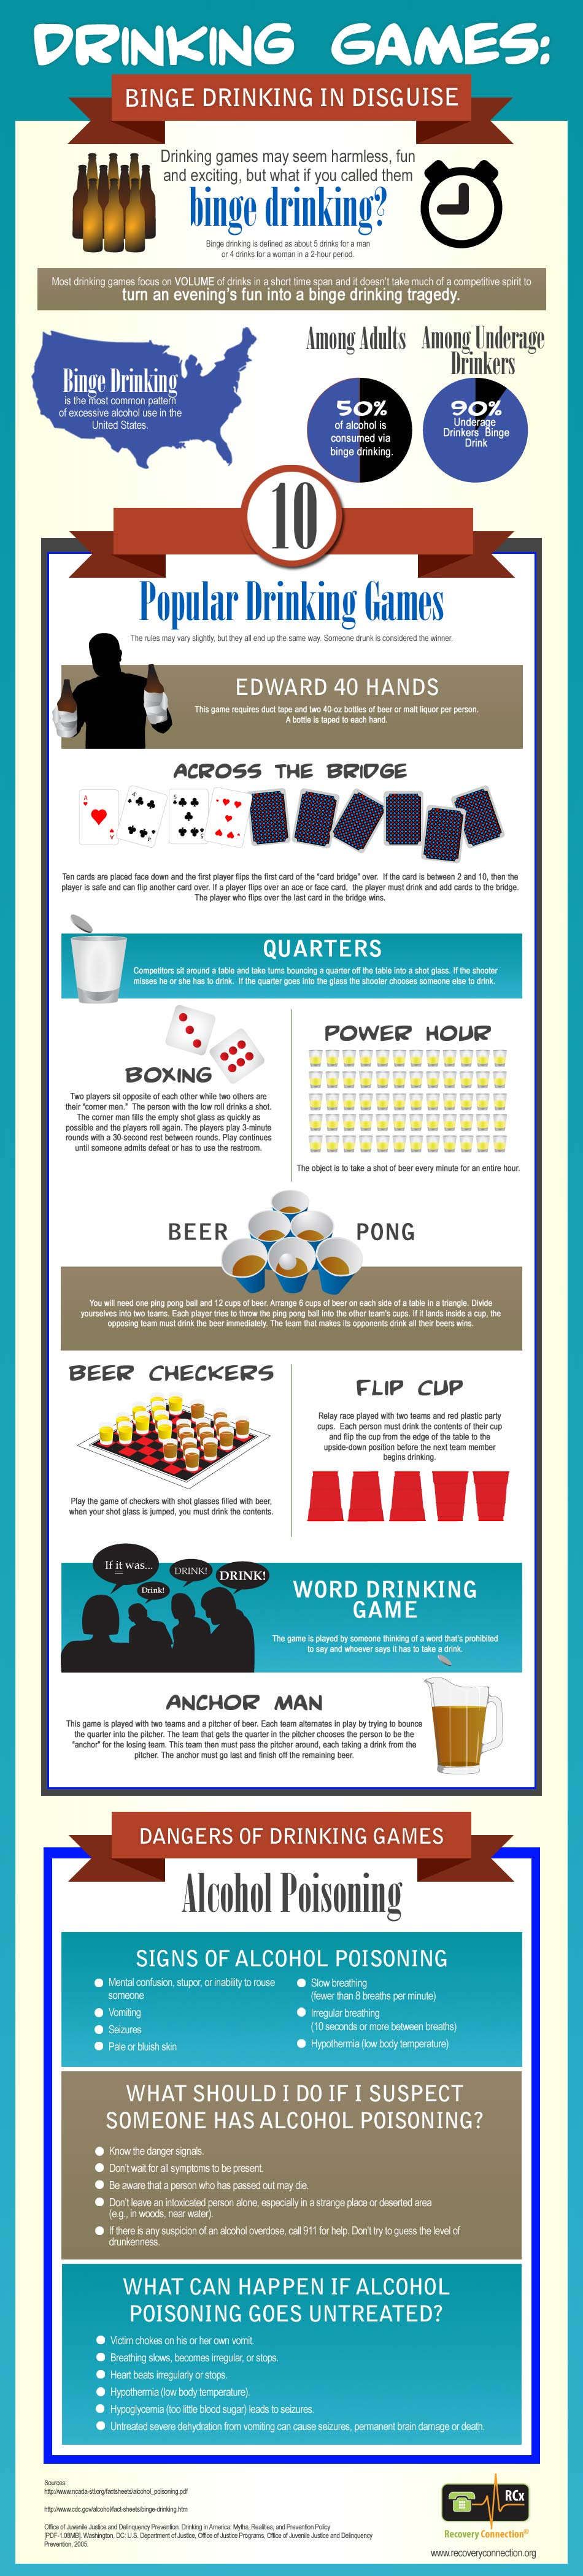 07 Drinking-Games-Binge-Drinking-Alcohol-in-Disguise